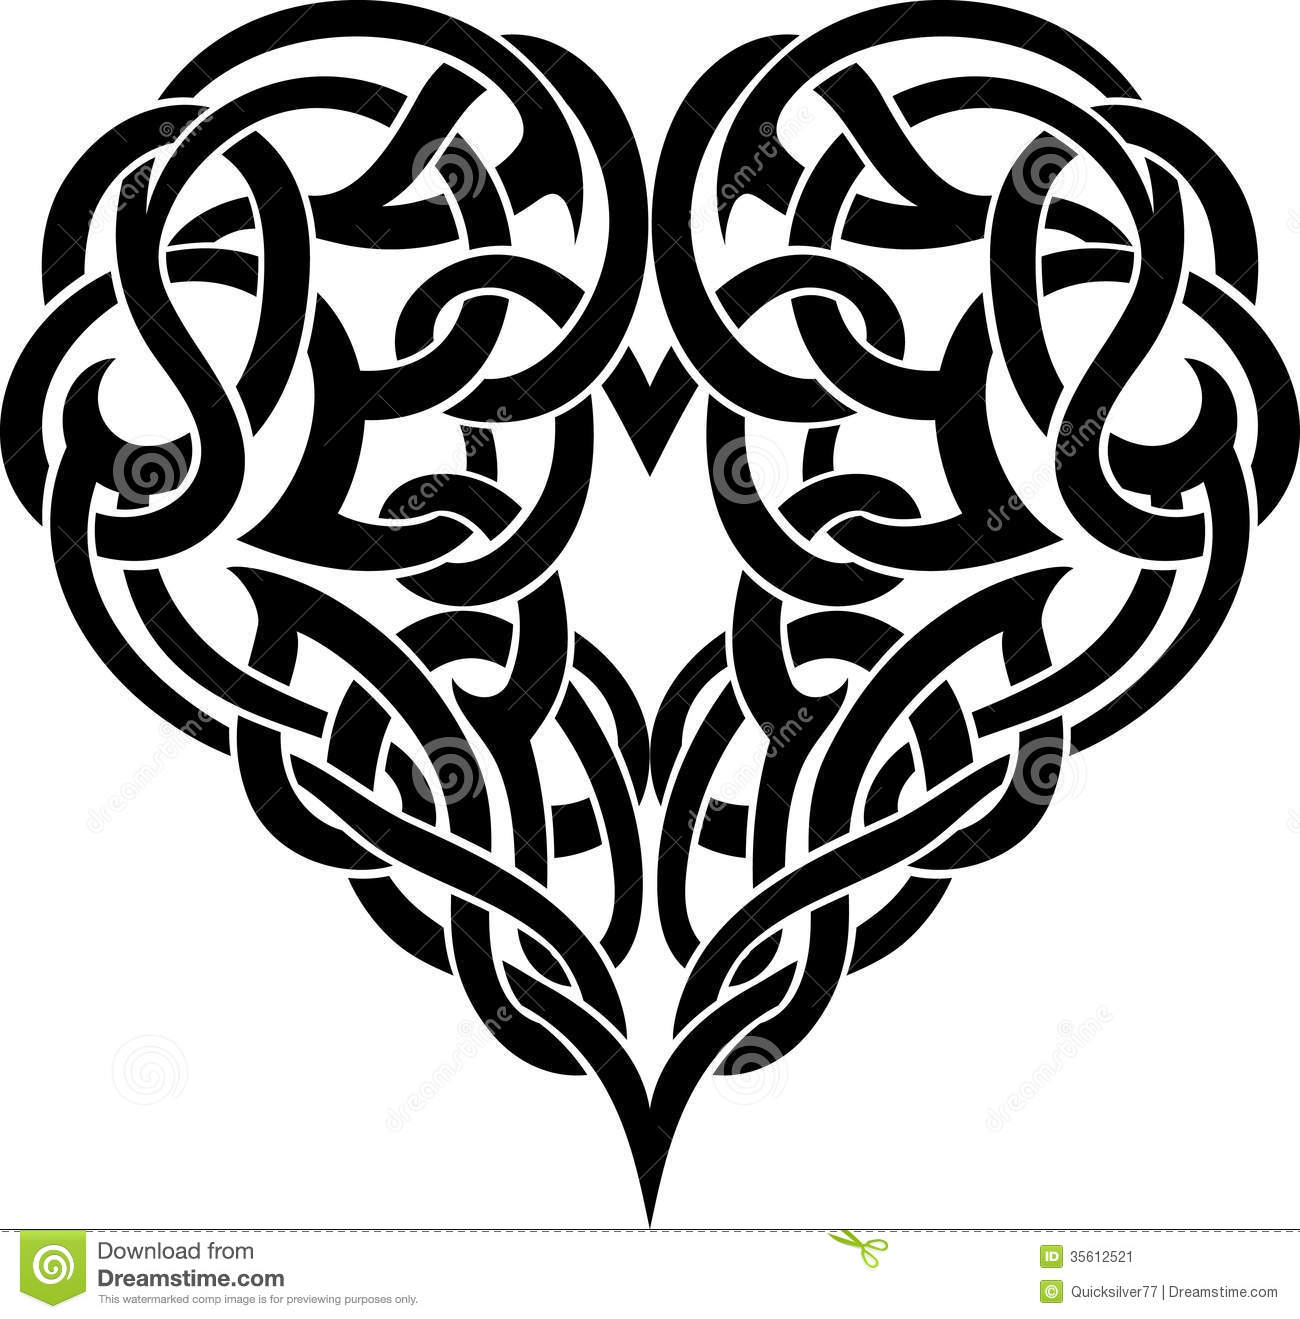 Ketiley of orvar inactive character the lord of the craft celtic heart tattoo intertwined pattern buycottarizona Images